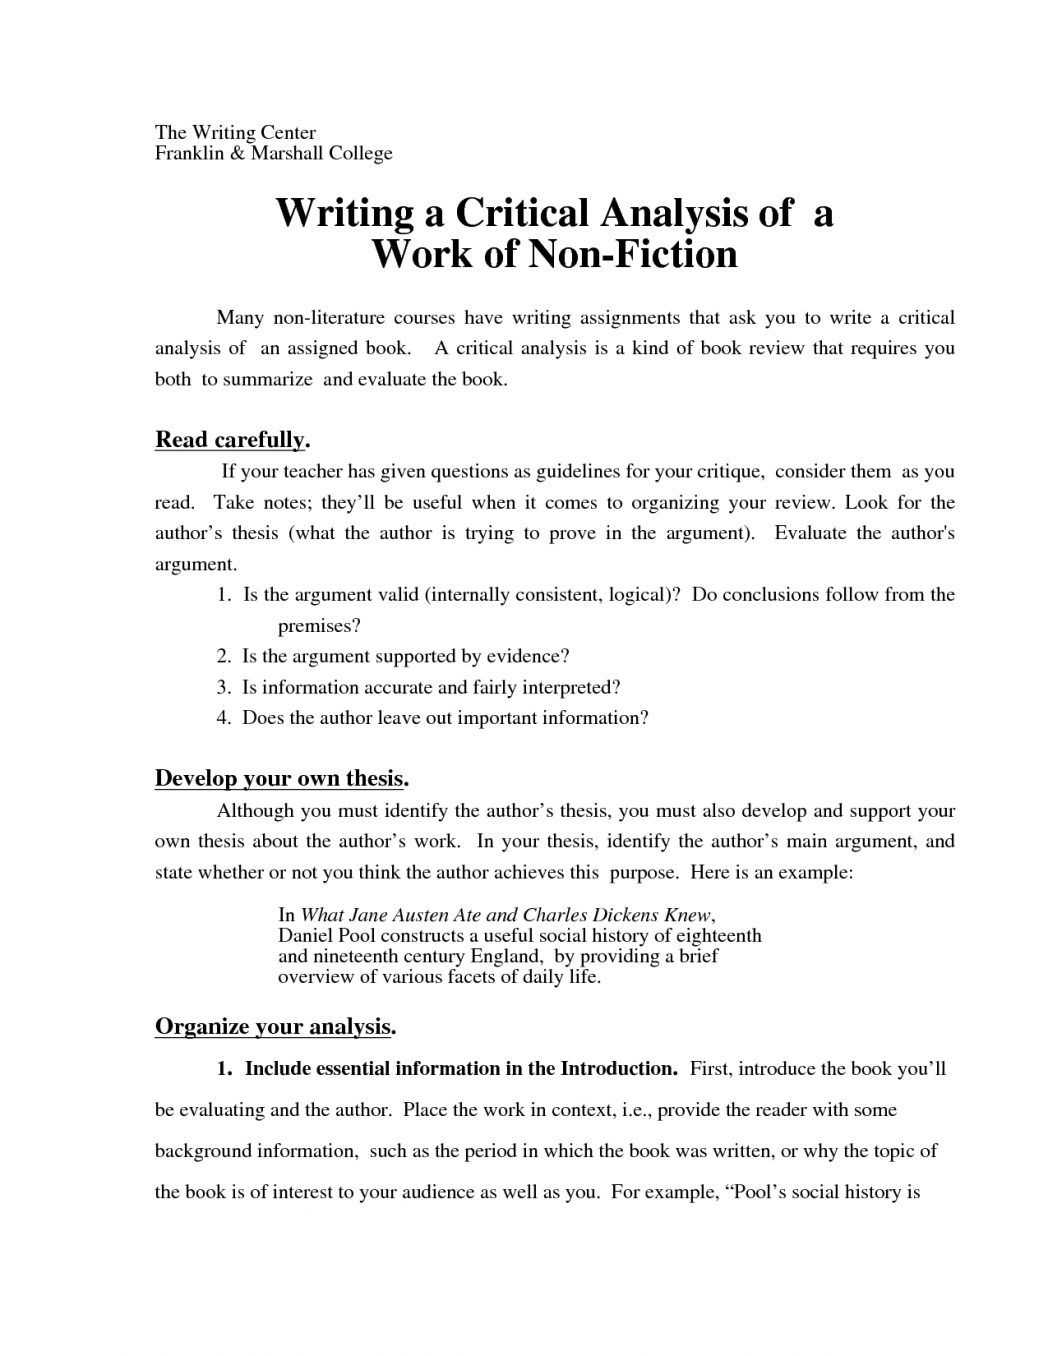 Apa style of writing critical essay